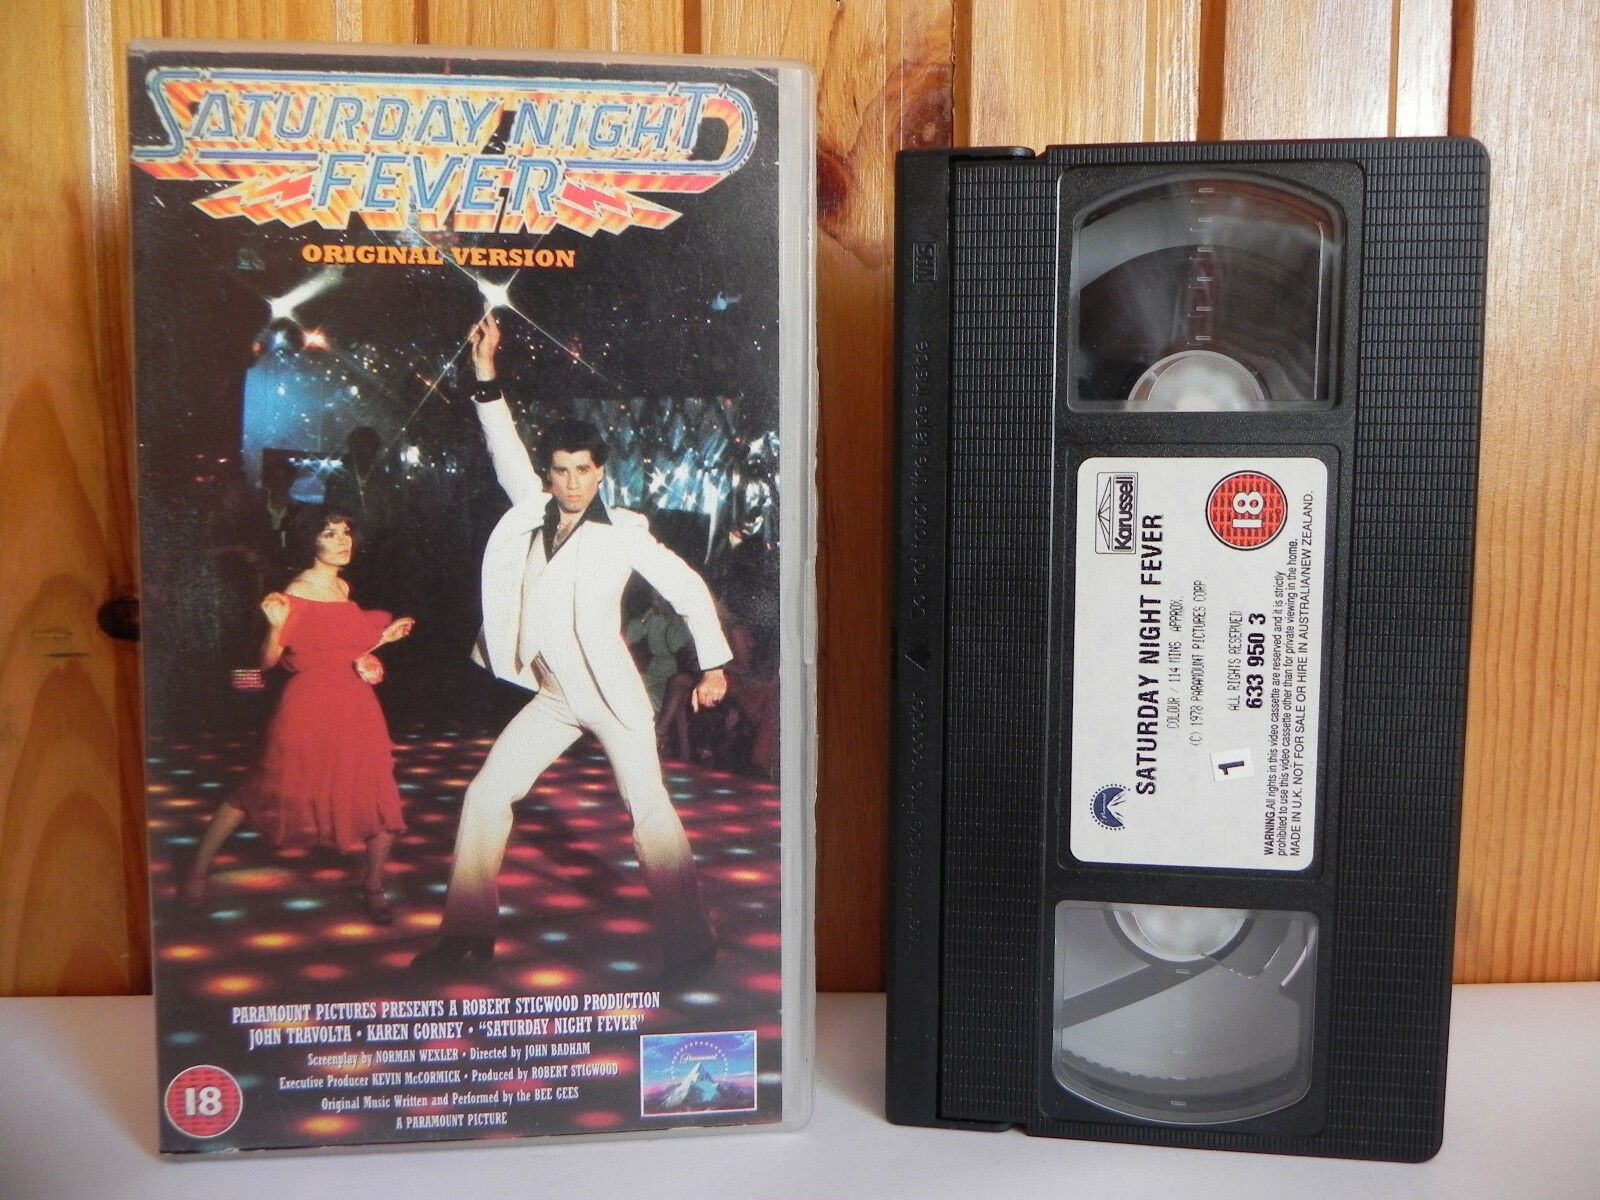 Saturday Night Fever (1977); Original Version - Musical - Disco - John Travolta - Pal VHS